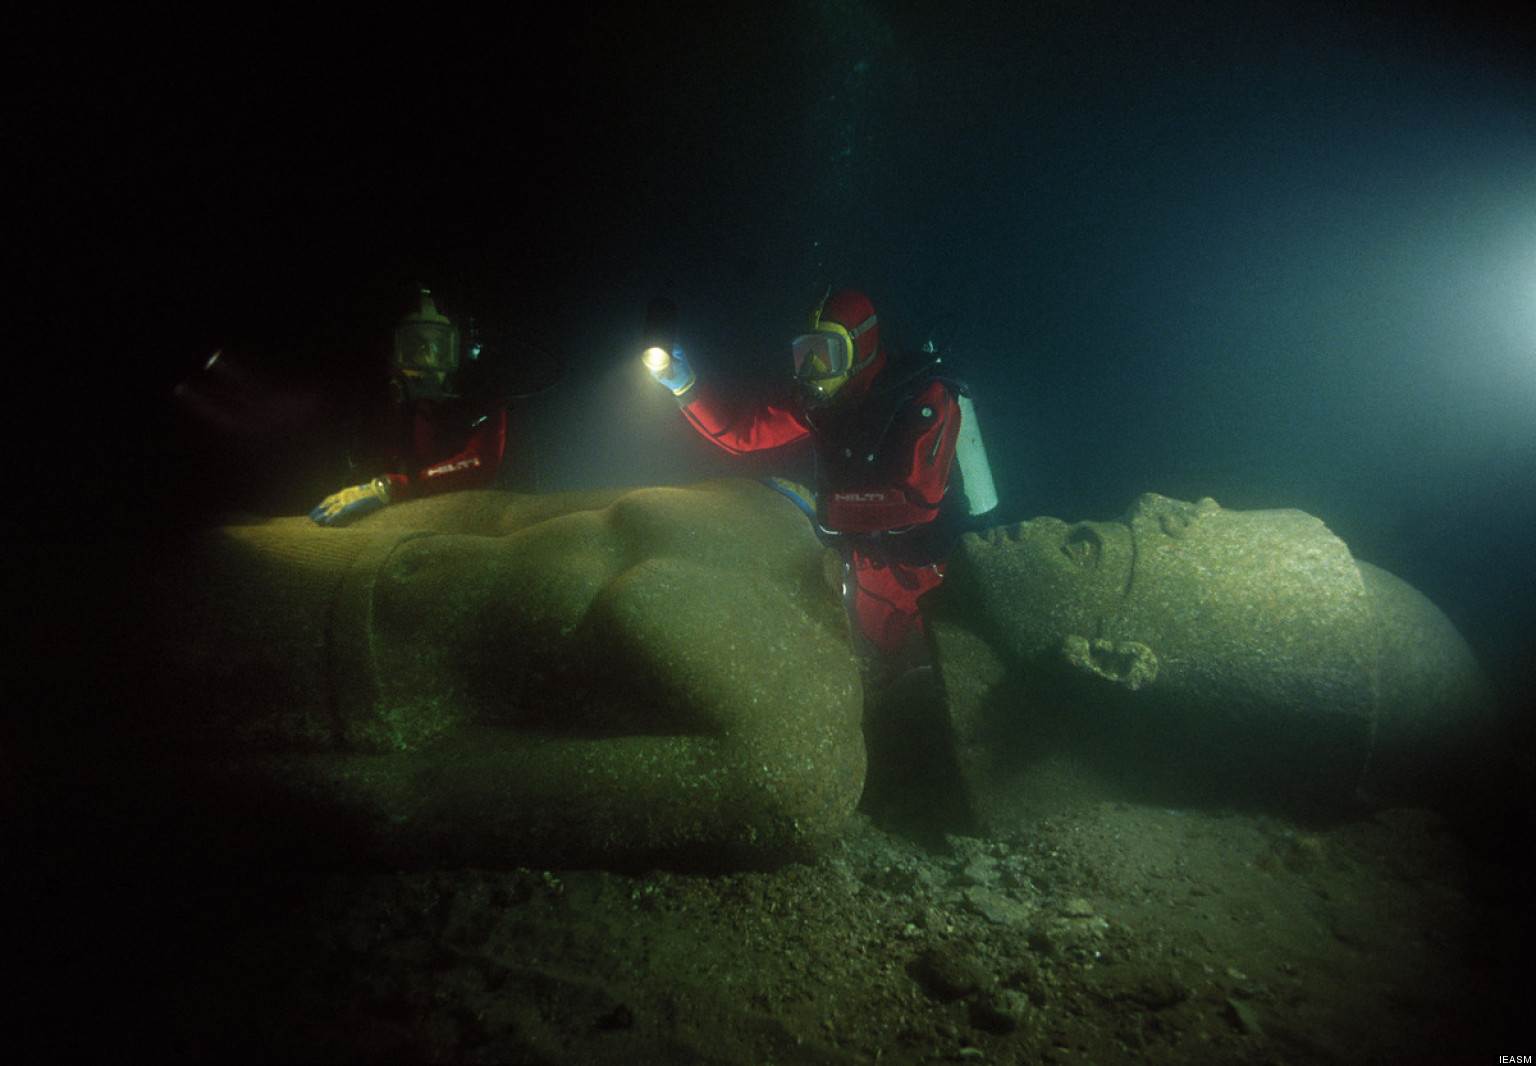 Heracleion Photos Lost Egyptian City Revealed After Years - Explorers discover ancient 1200 year old egyptian city